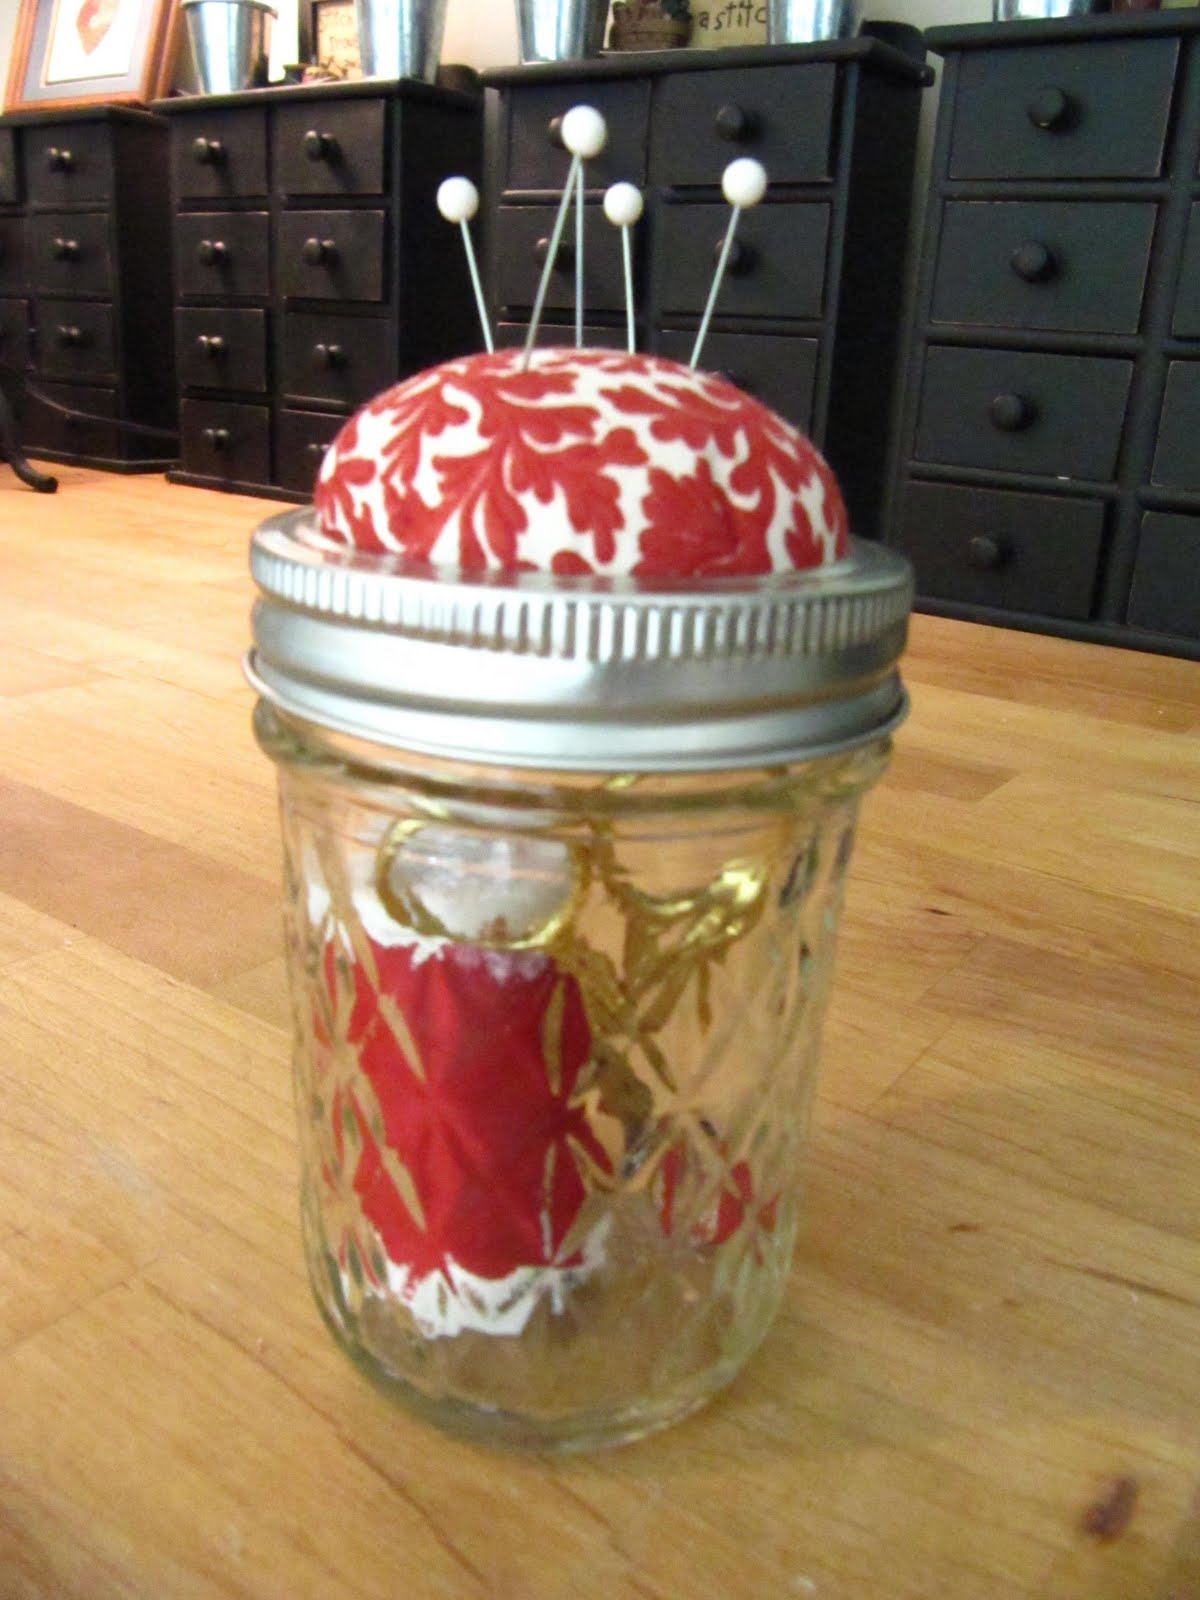 A DIY mason jar is the perfect sewing supplies storage that also saves space in a small apartment.